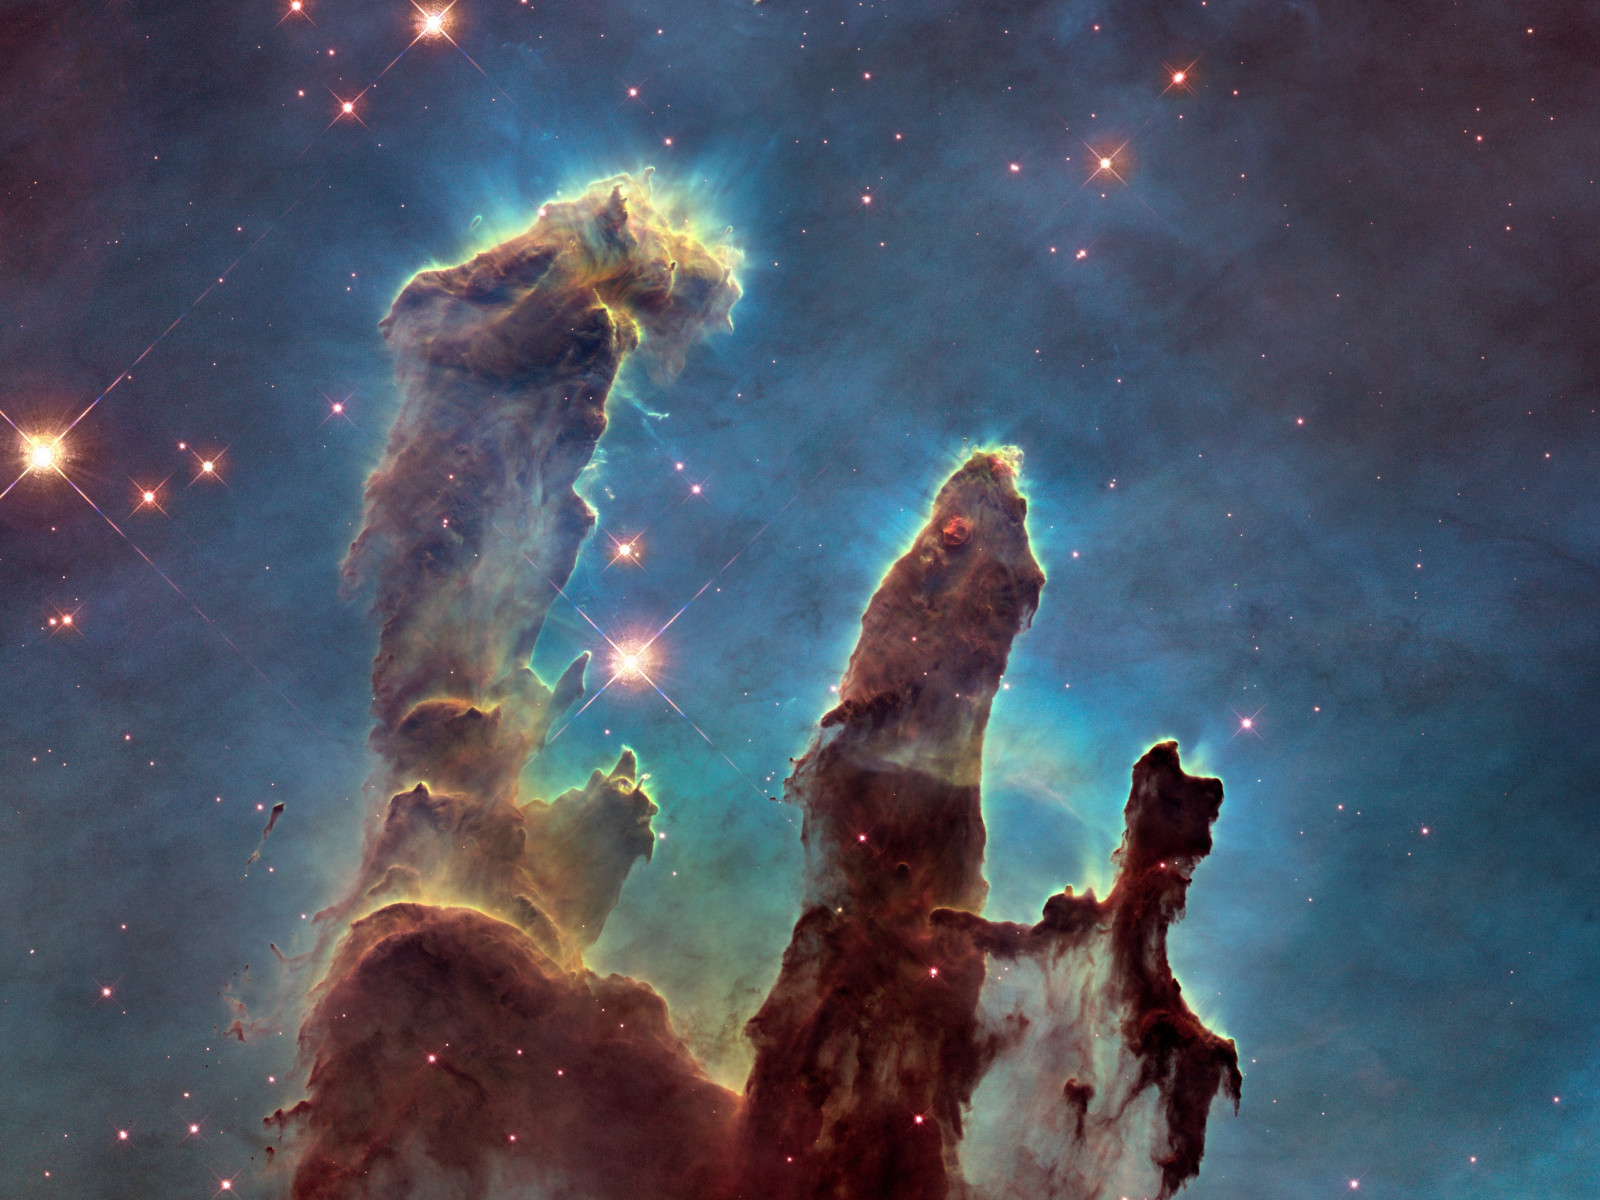 The Eagle Nebula's Pillars of Creation wallpaper 1600x1200